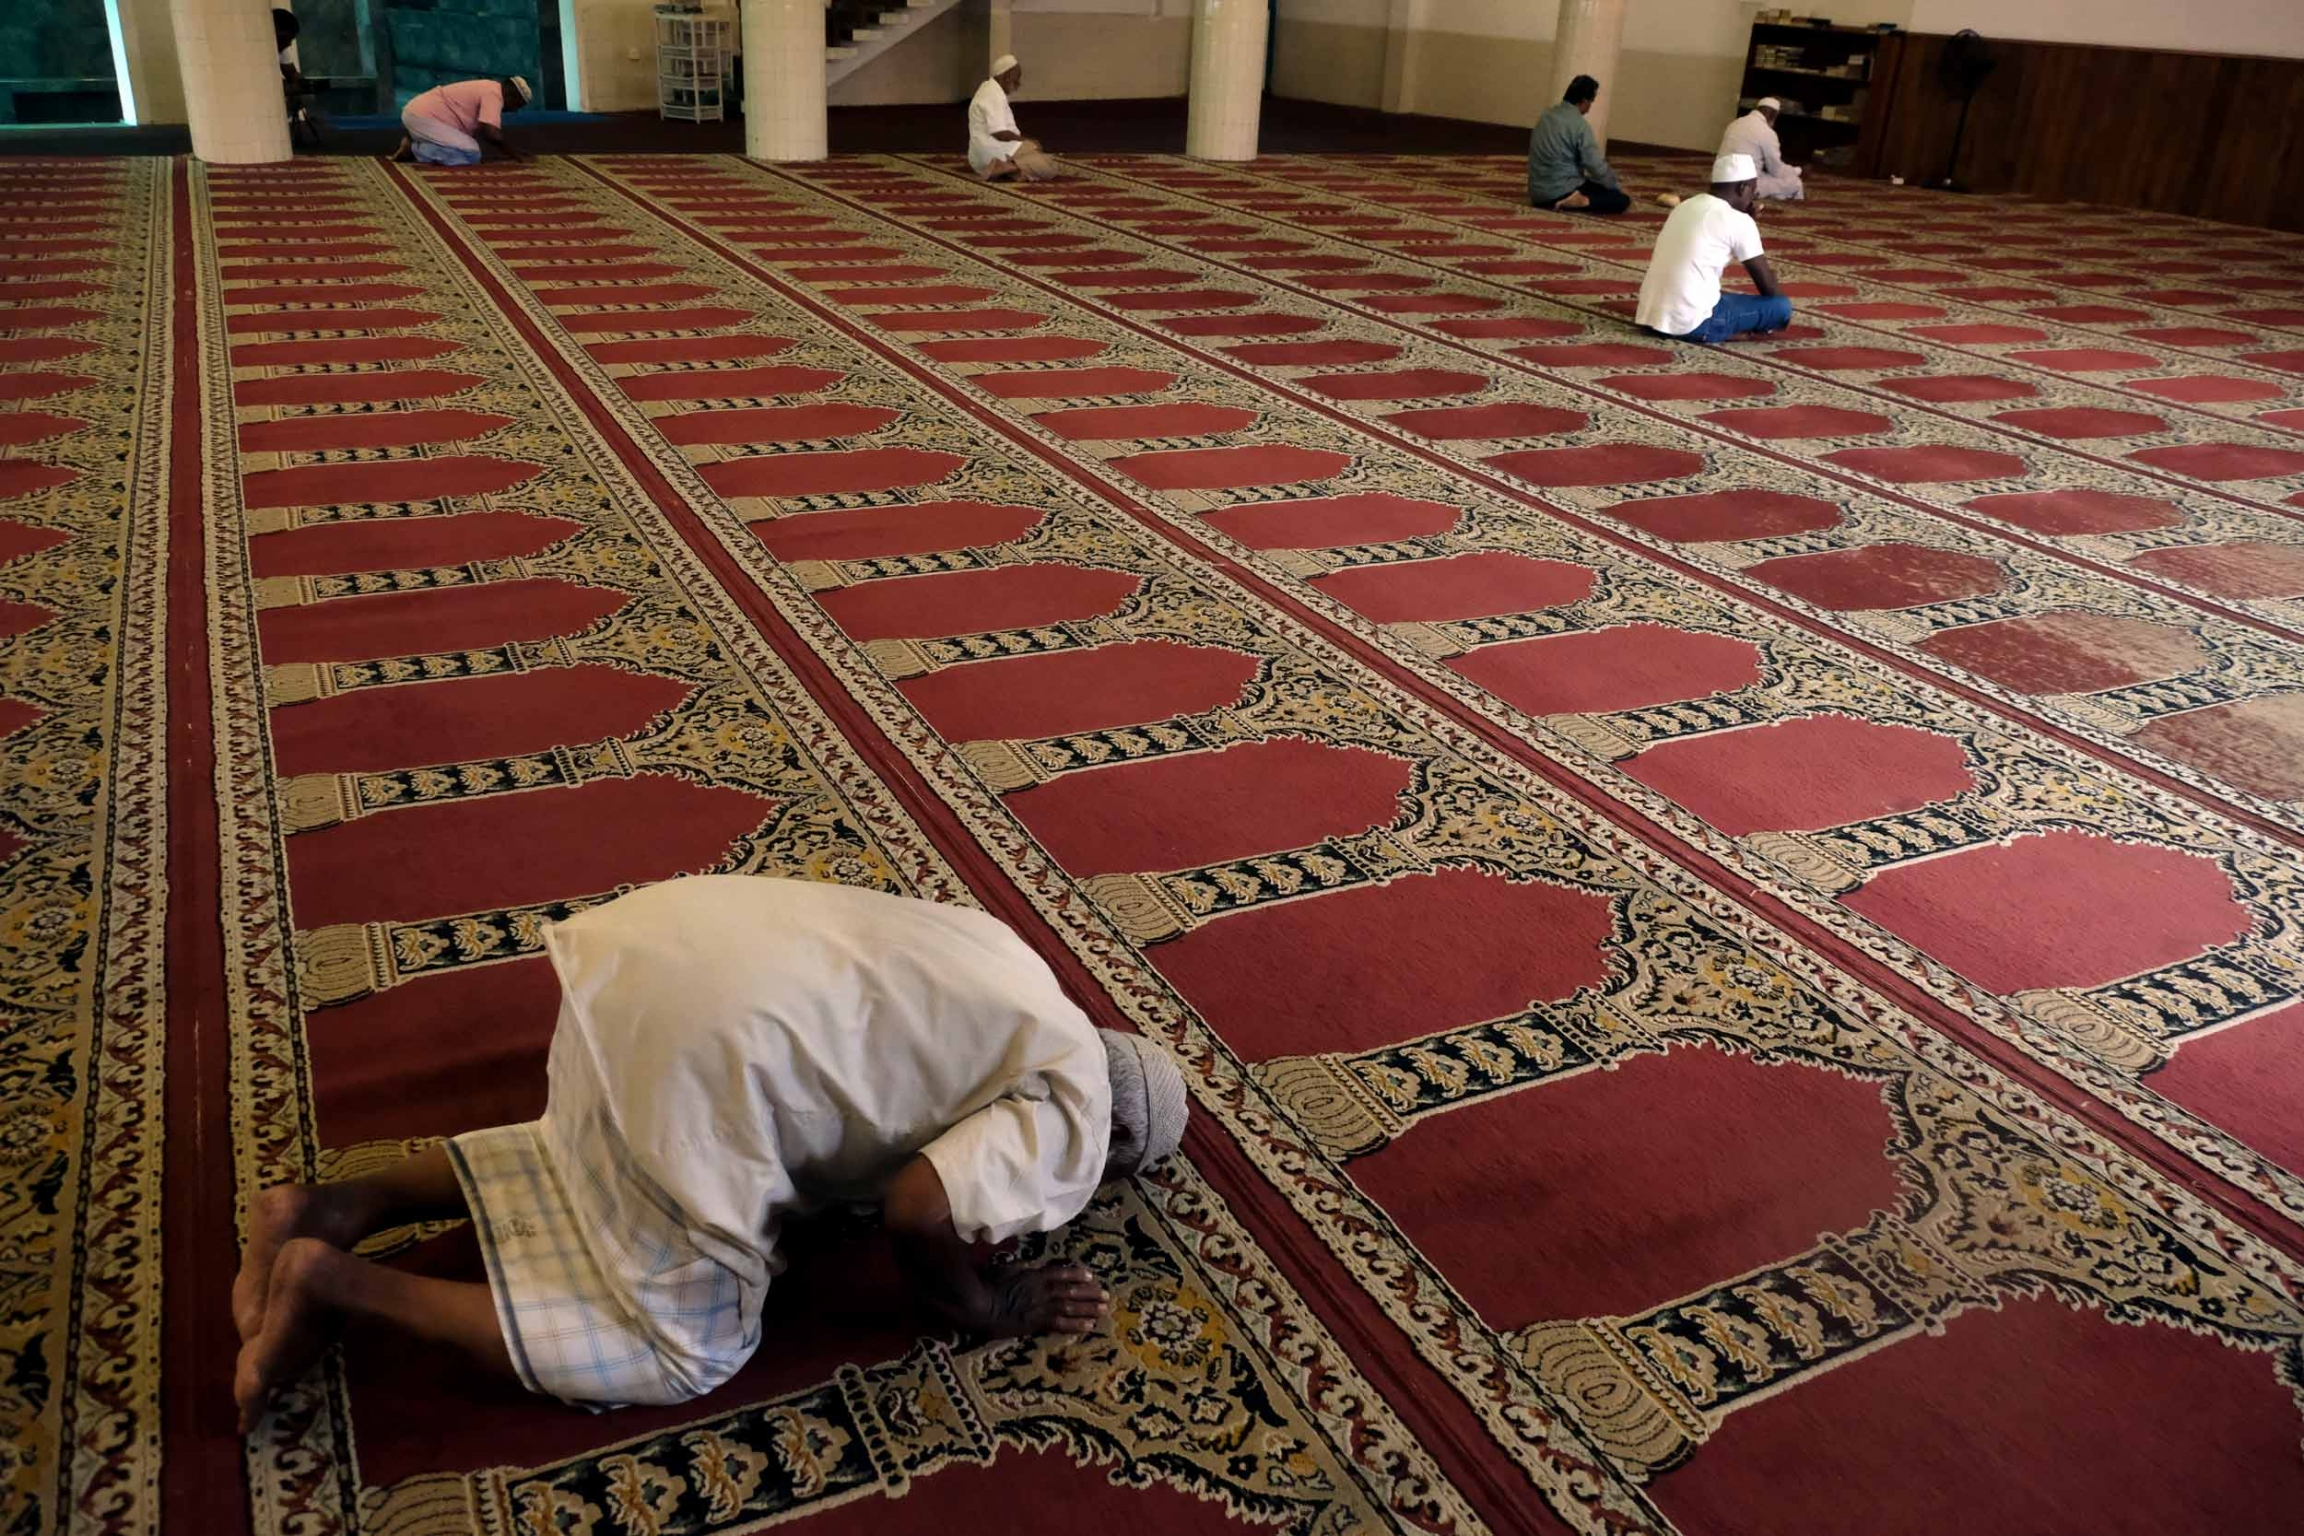 A few men are praying in a mosque